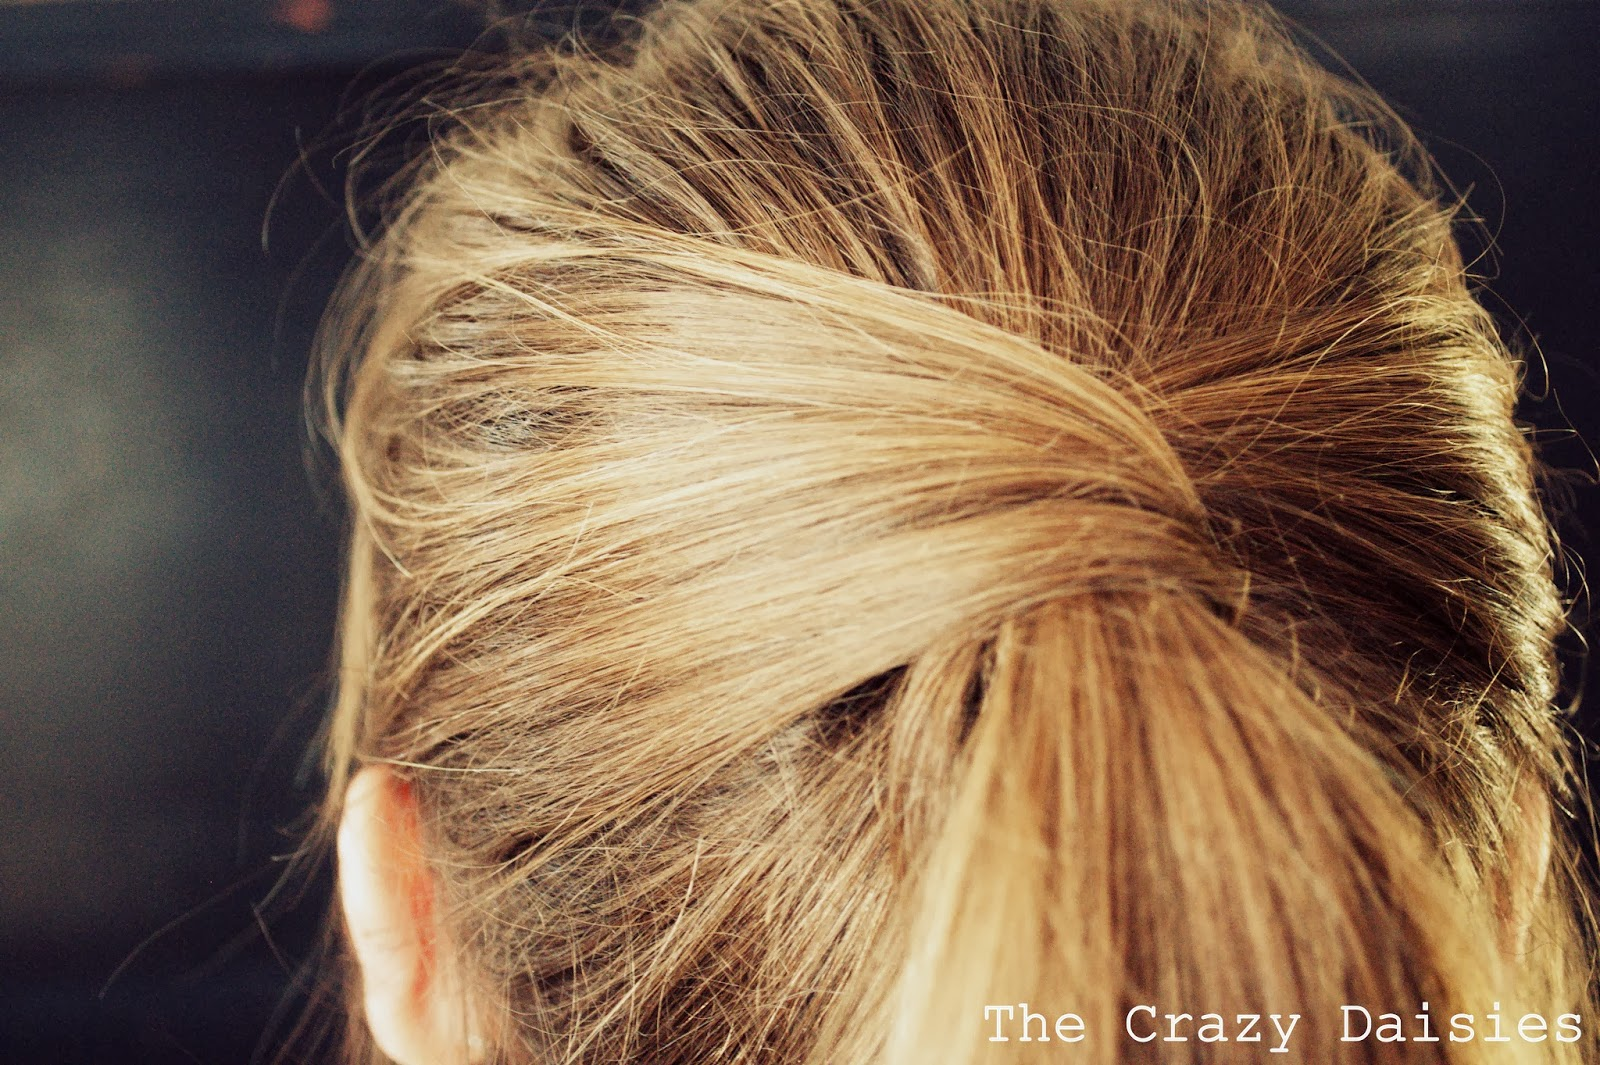 The Crazy Daisies DIY Crossover Ponytail - Diy ponytail wrap